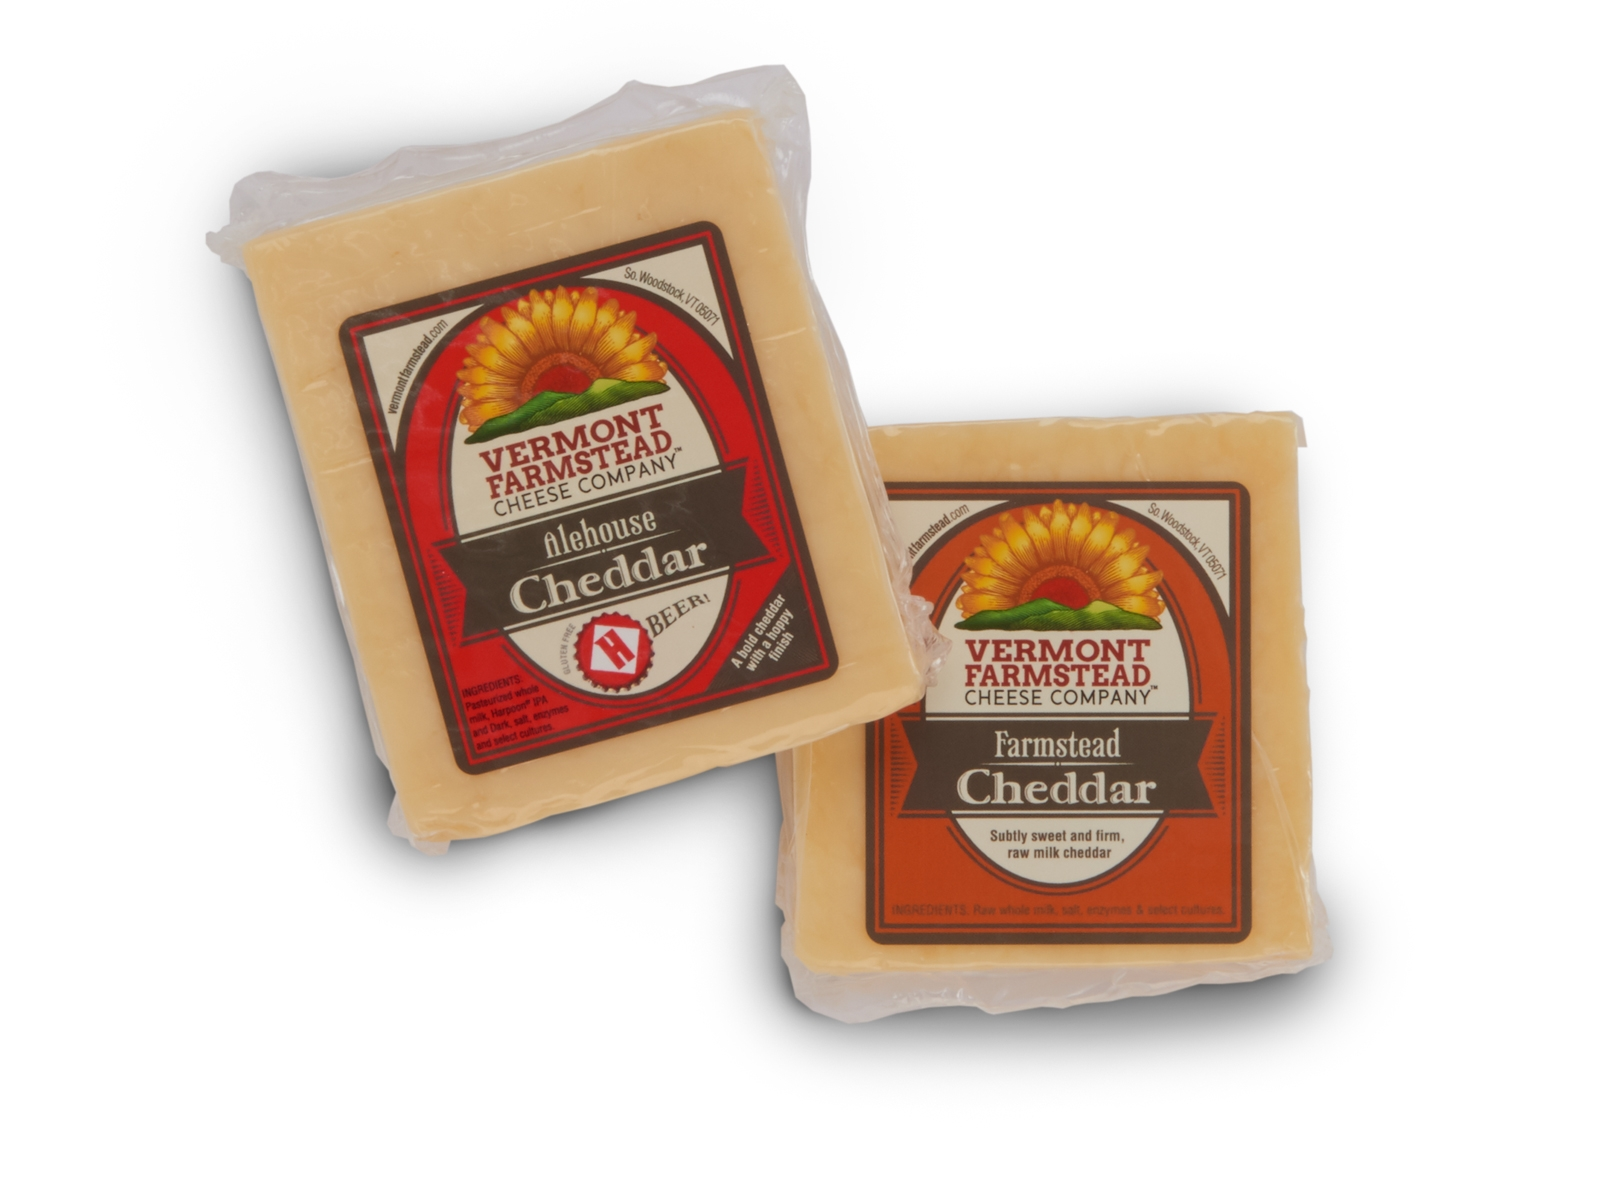 Vermont Farmstead Cheese Pack